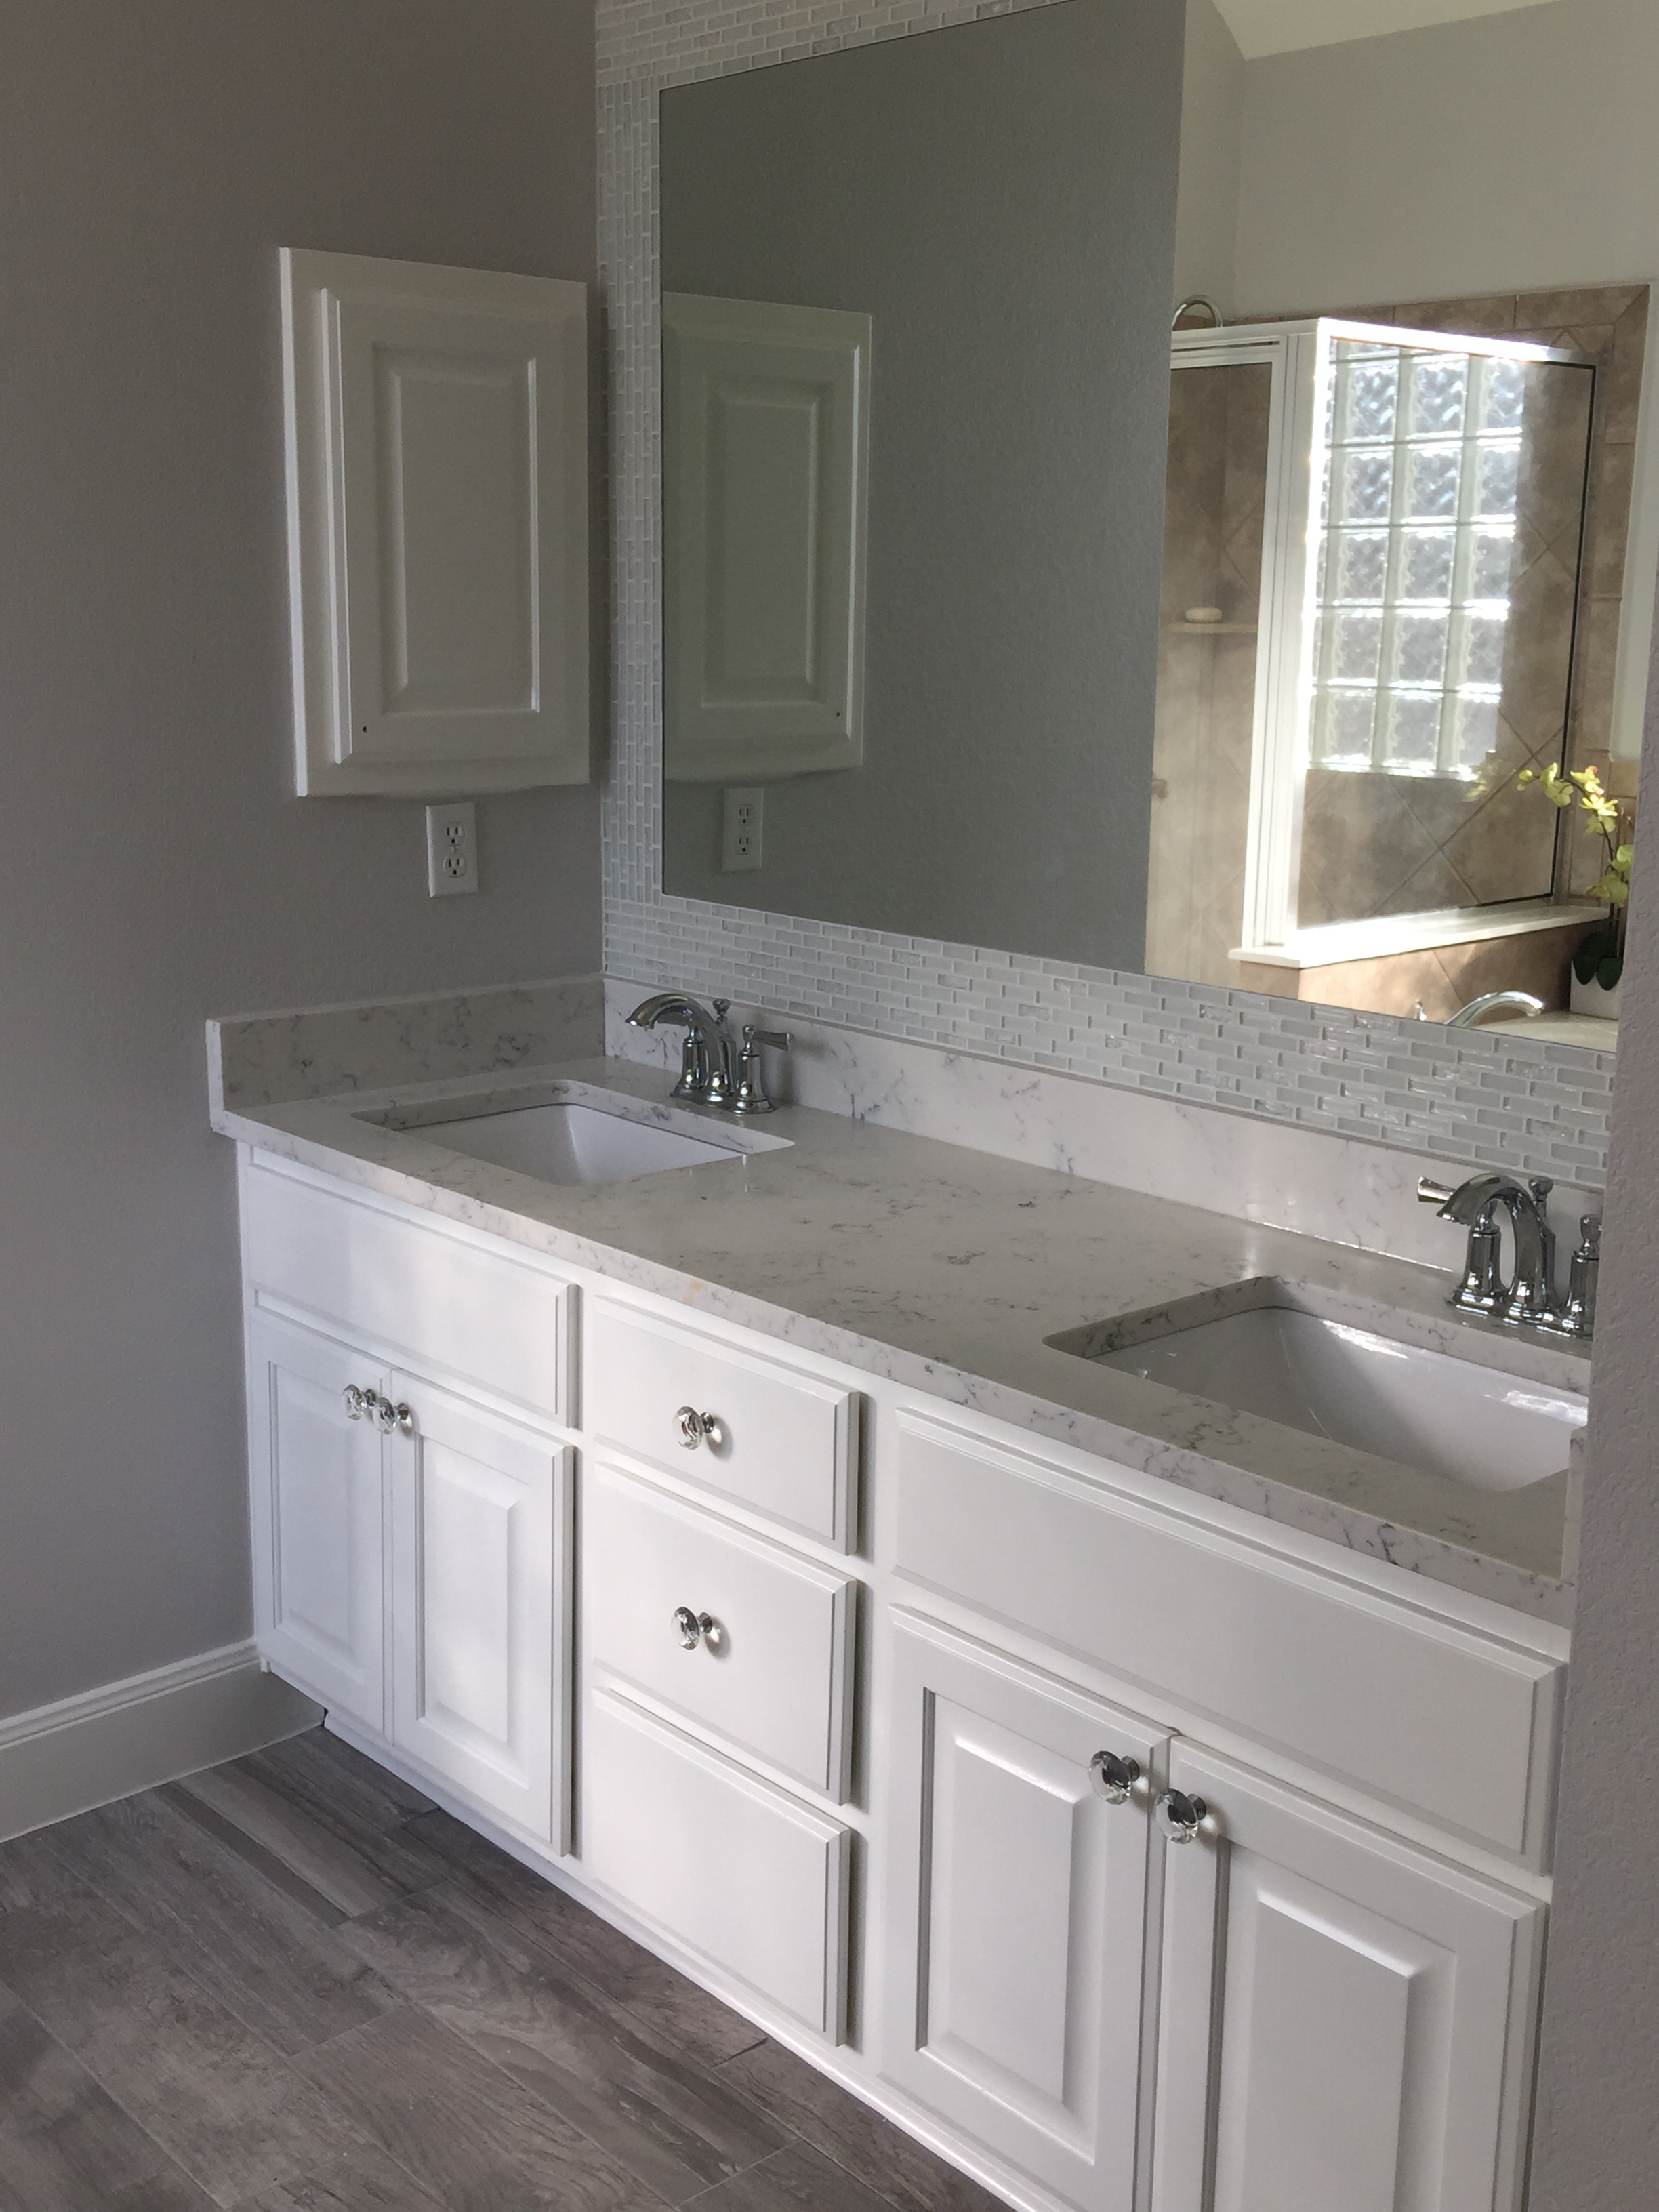 Bathroom cabinet makers - These Items Will Make Your House Your Home We Work With Skilled Cabinet Makers That Can Transform Your Ideas Into Reality